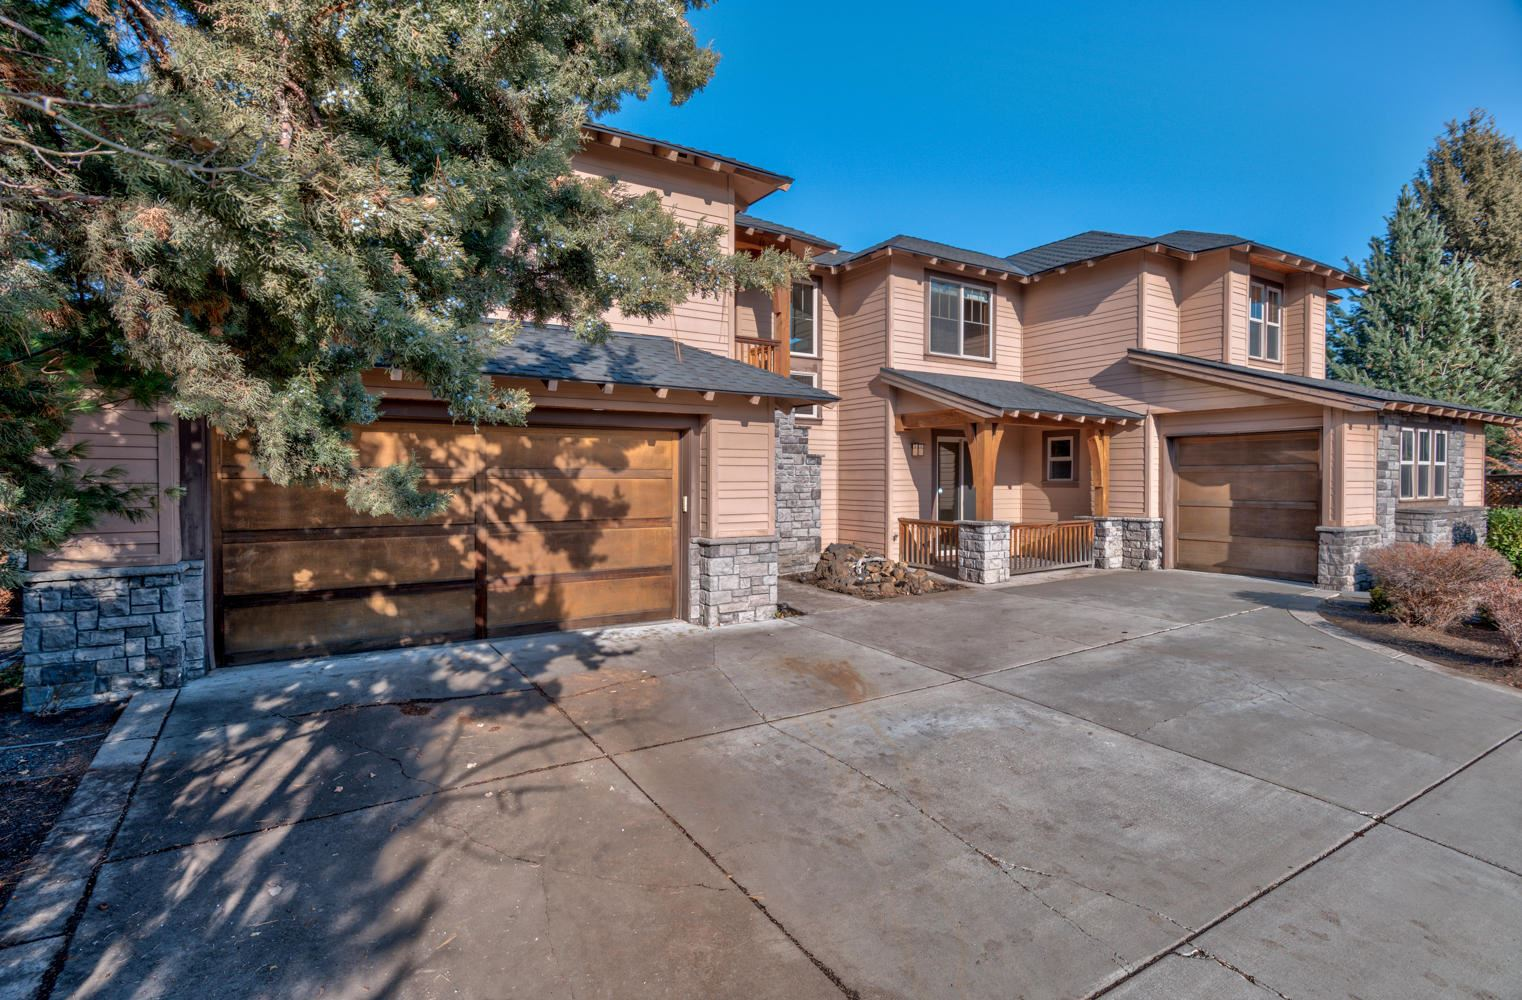 Photo of 19560 Hollygrape Street, Bend, OR 97702 (MLS # 220112849)